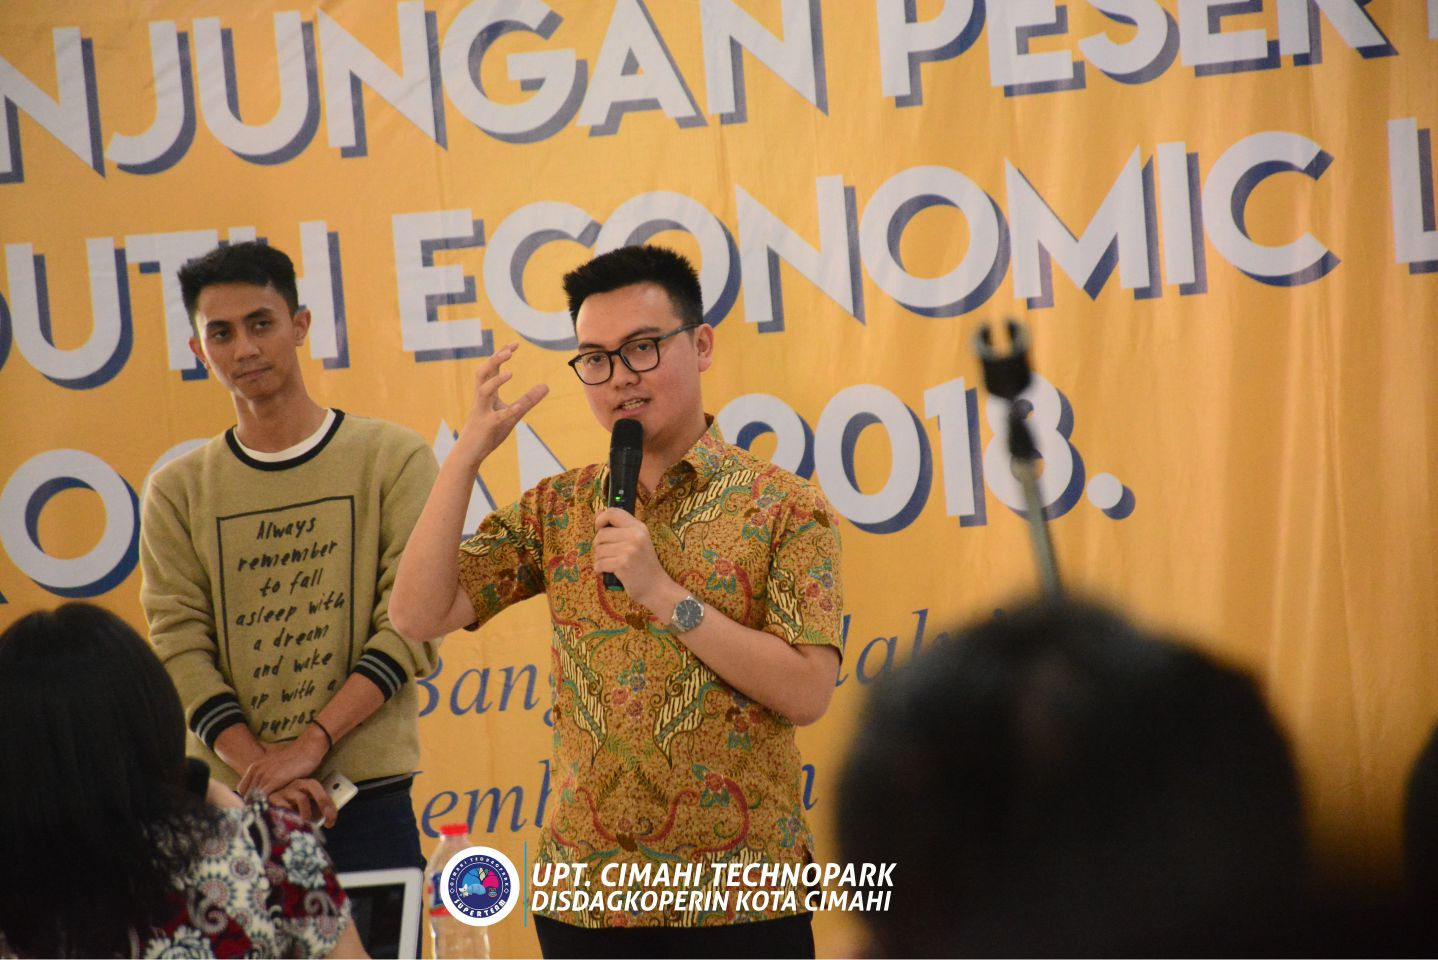 KUNJUNGAN PESERTA YOUTH ECONOMIC LEADERSHIP PROGRAM – BI INSTITUTE